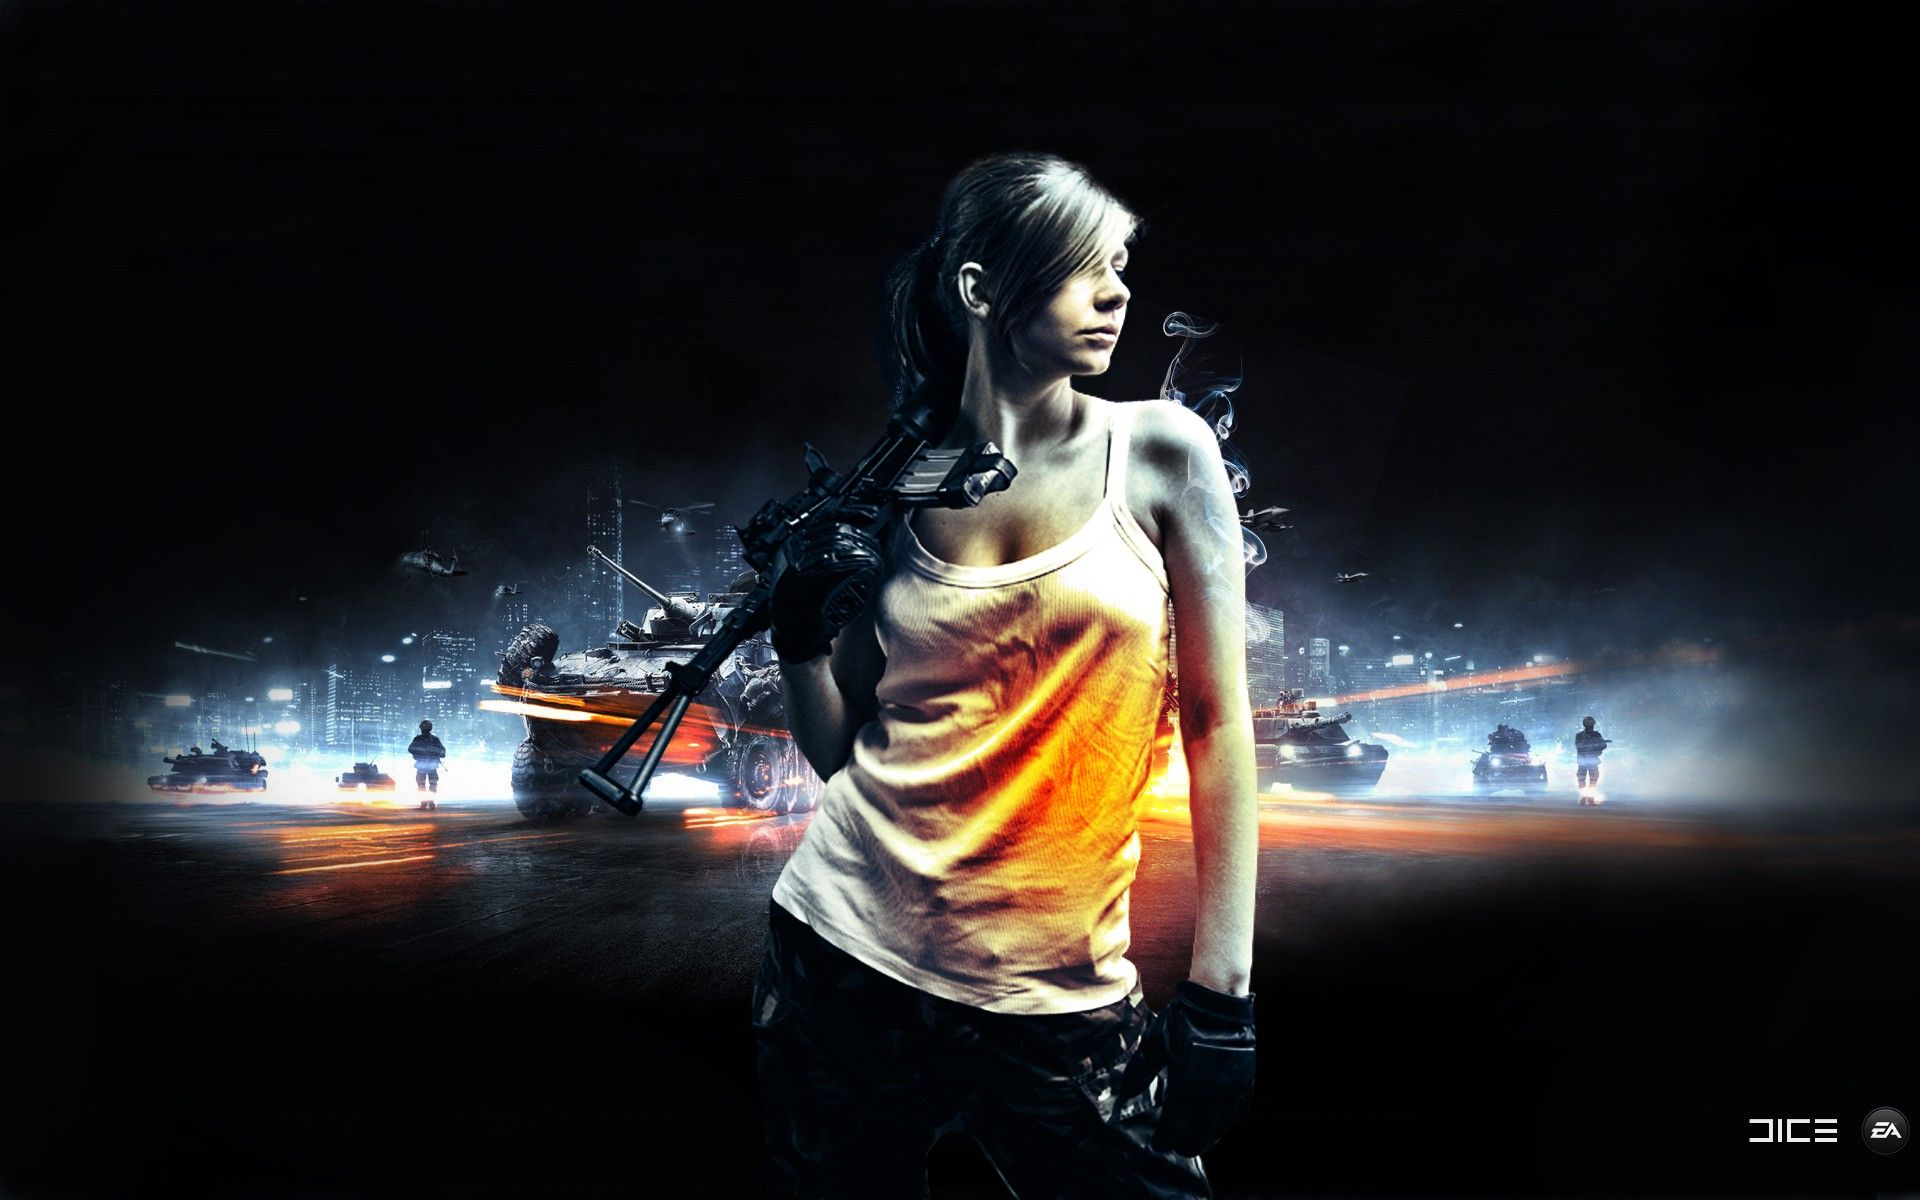 Battlefield 3 Aftermath Epicenter Wallpapers | HD Wallpapers